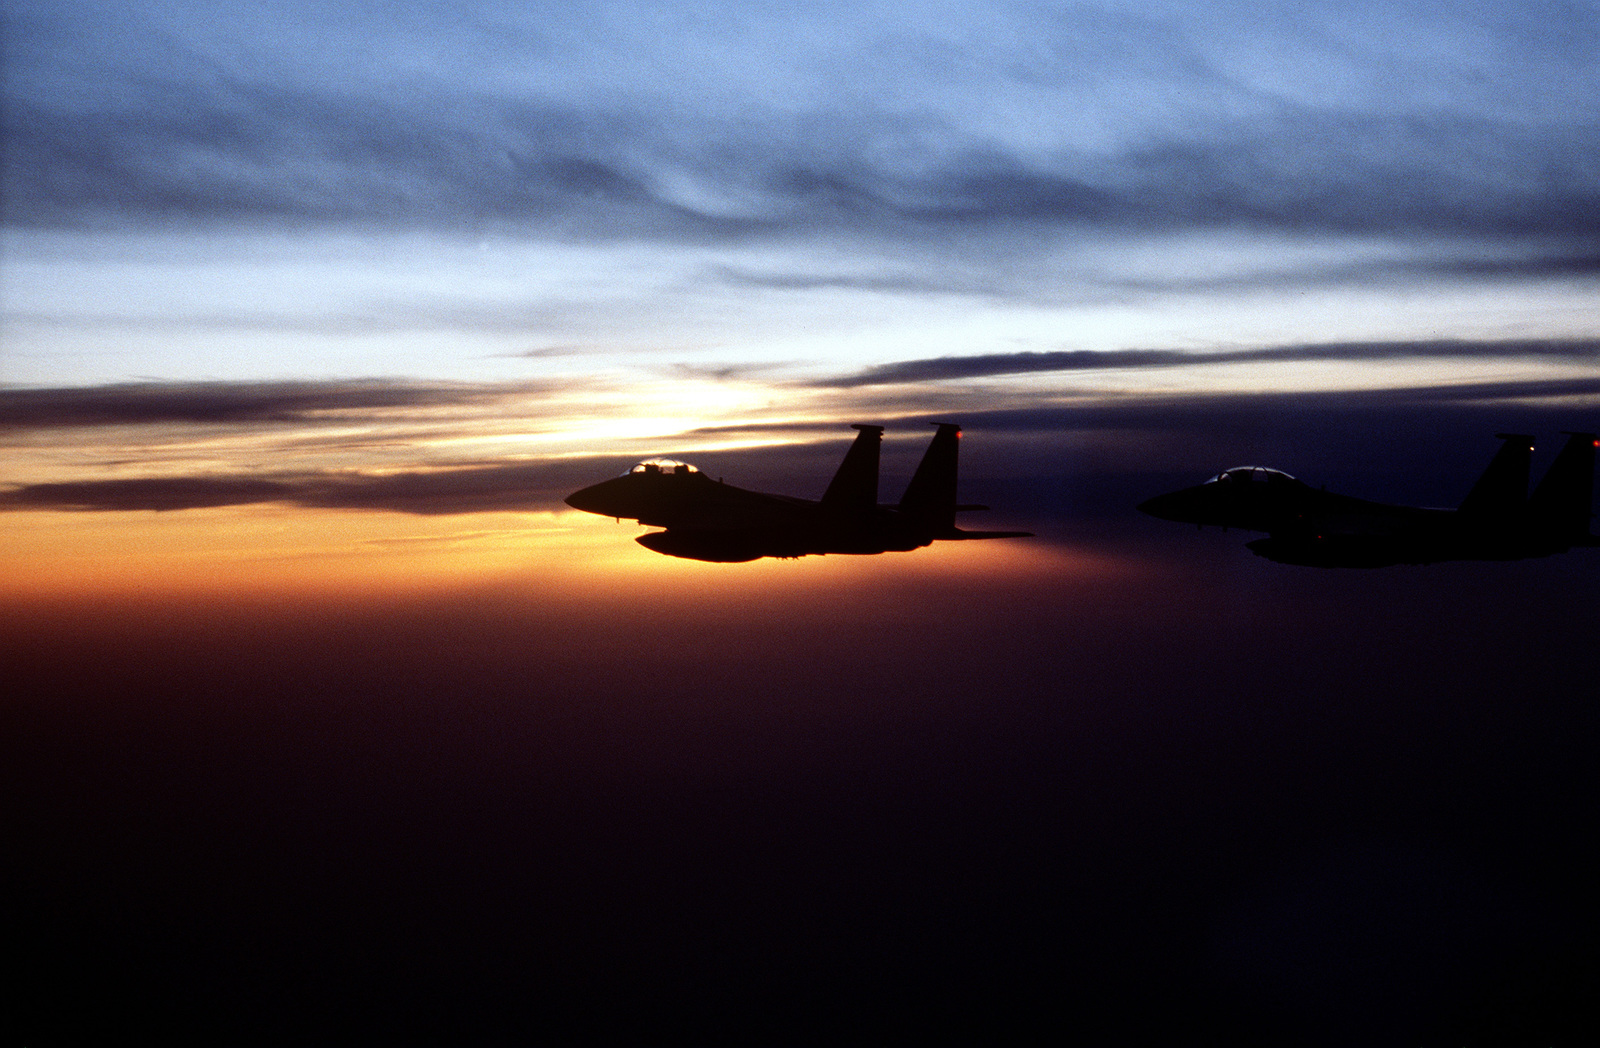 A silhouette of two US Air Force F-15E Strike Eagles from the 494th Fighter Squadron, Lakenheath Royal Air Force, England, in flight with sunset in background. The aircraft are flying sorties in support of the enforcement of a NATO no fly zone over Bosnia-Herzegovina